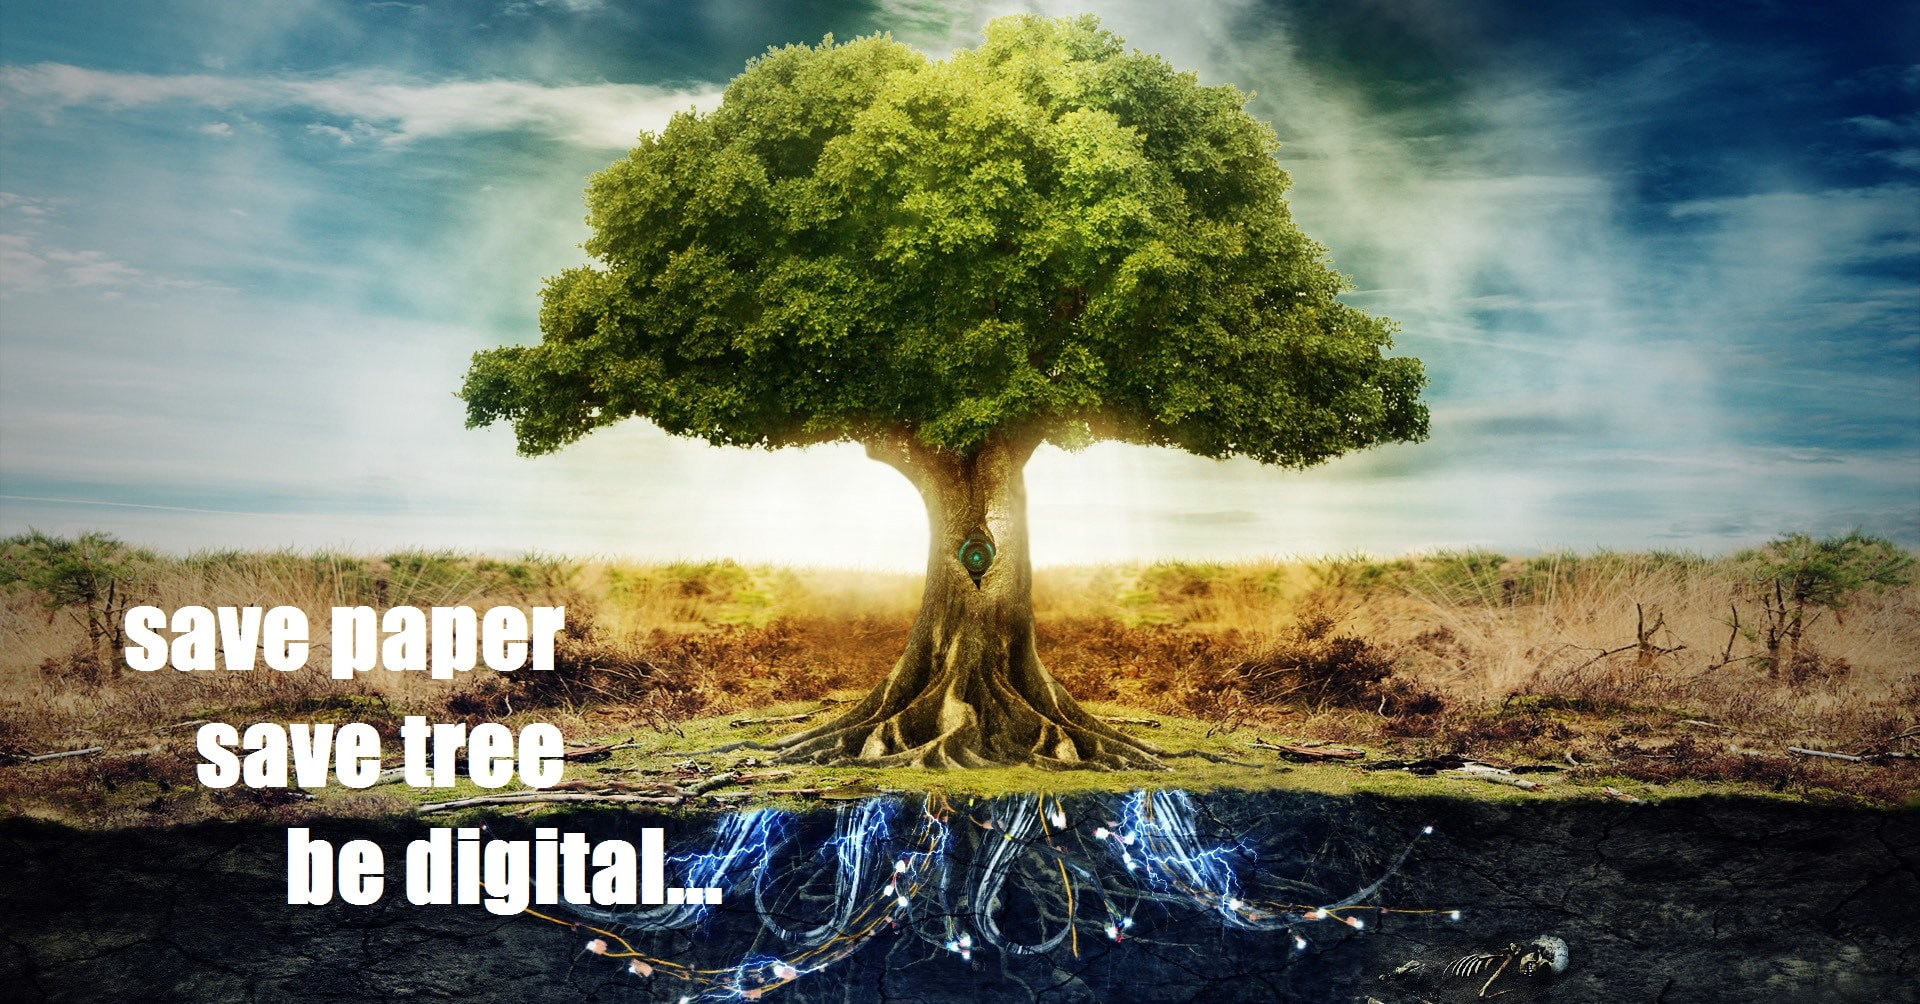 save-paper-save-tree-be-digital